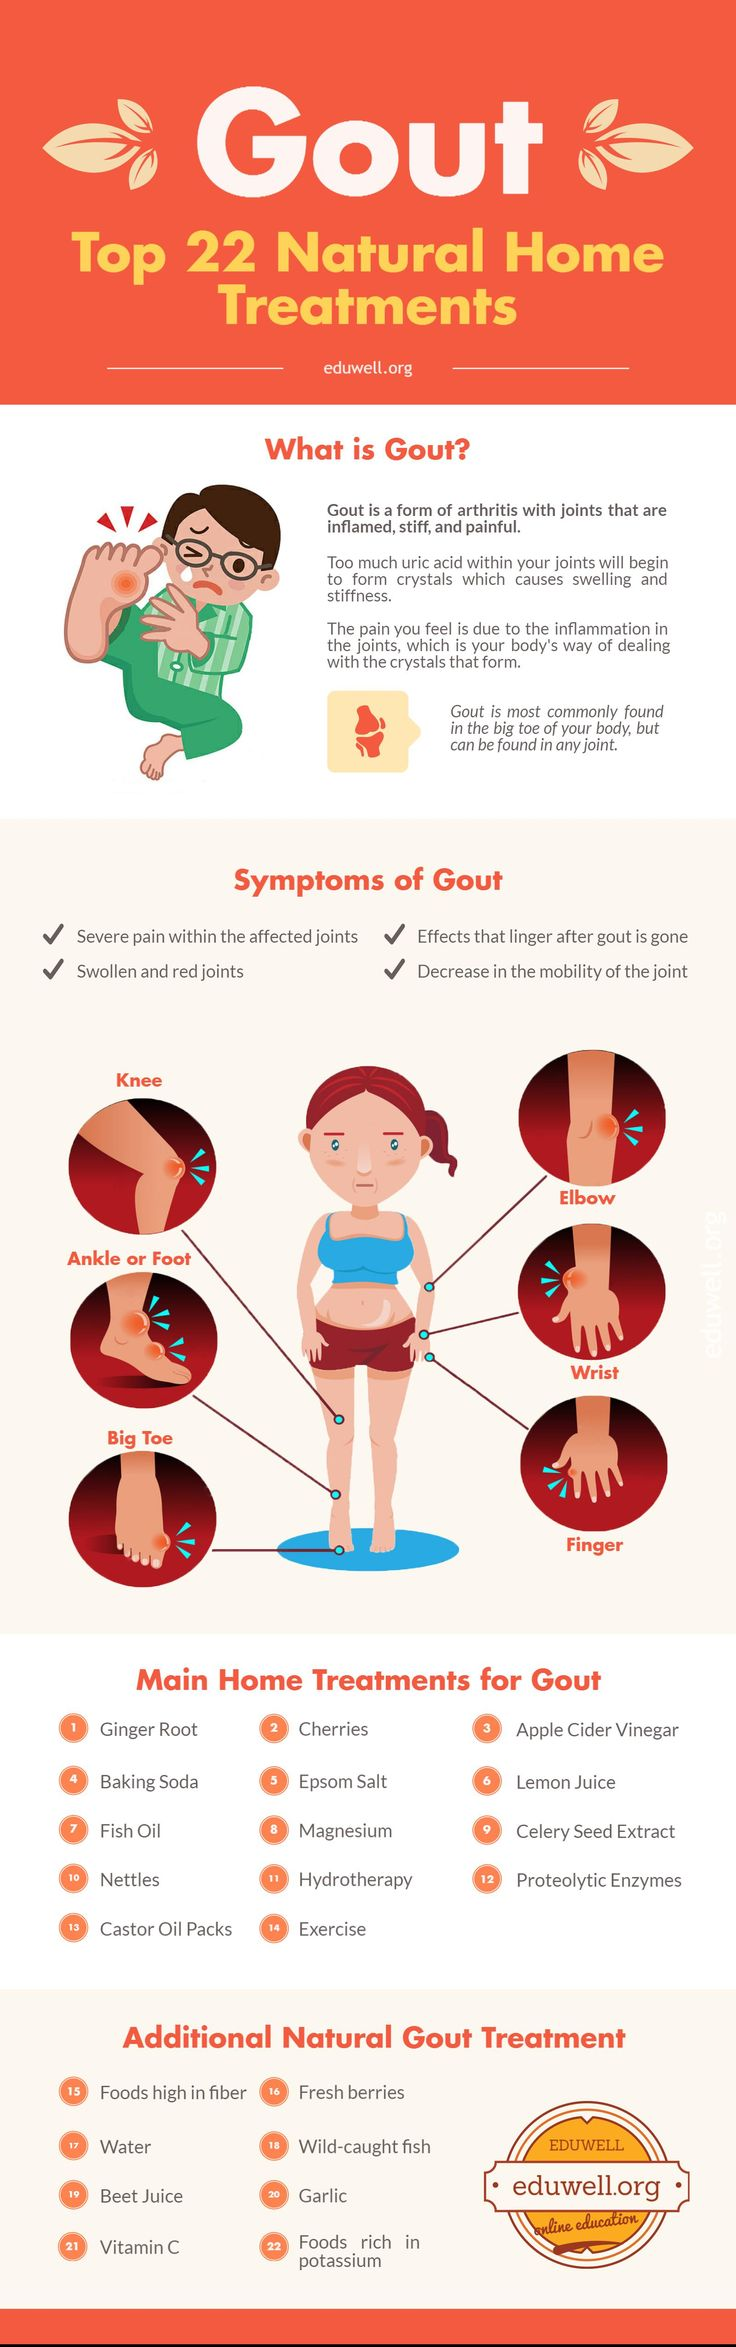 Top 22 Natural Home Treatments for Gout (Chart) - https://eduwell.org/treatments-for-gout Health. Learn important facts about gout, including its symptoms, natural treatment options. DIY Remedies for Gout Pain.